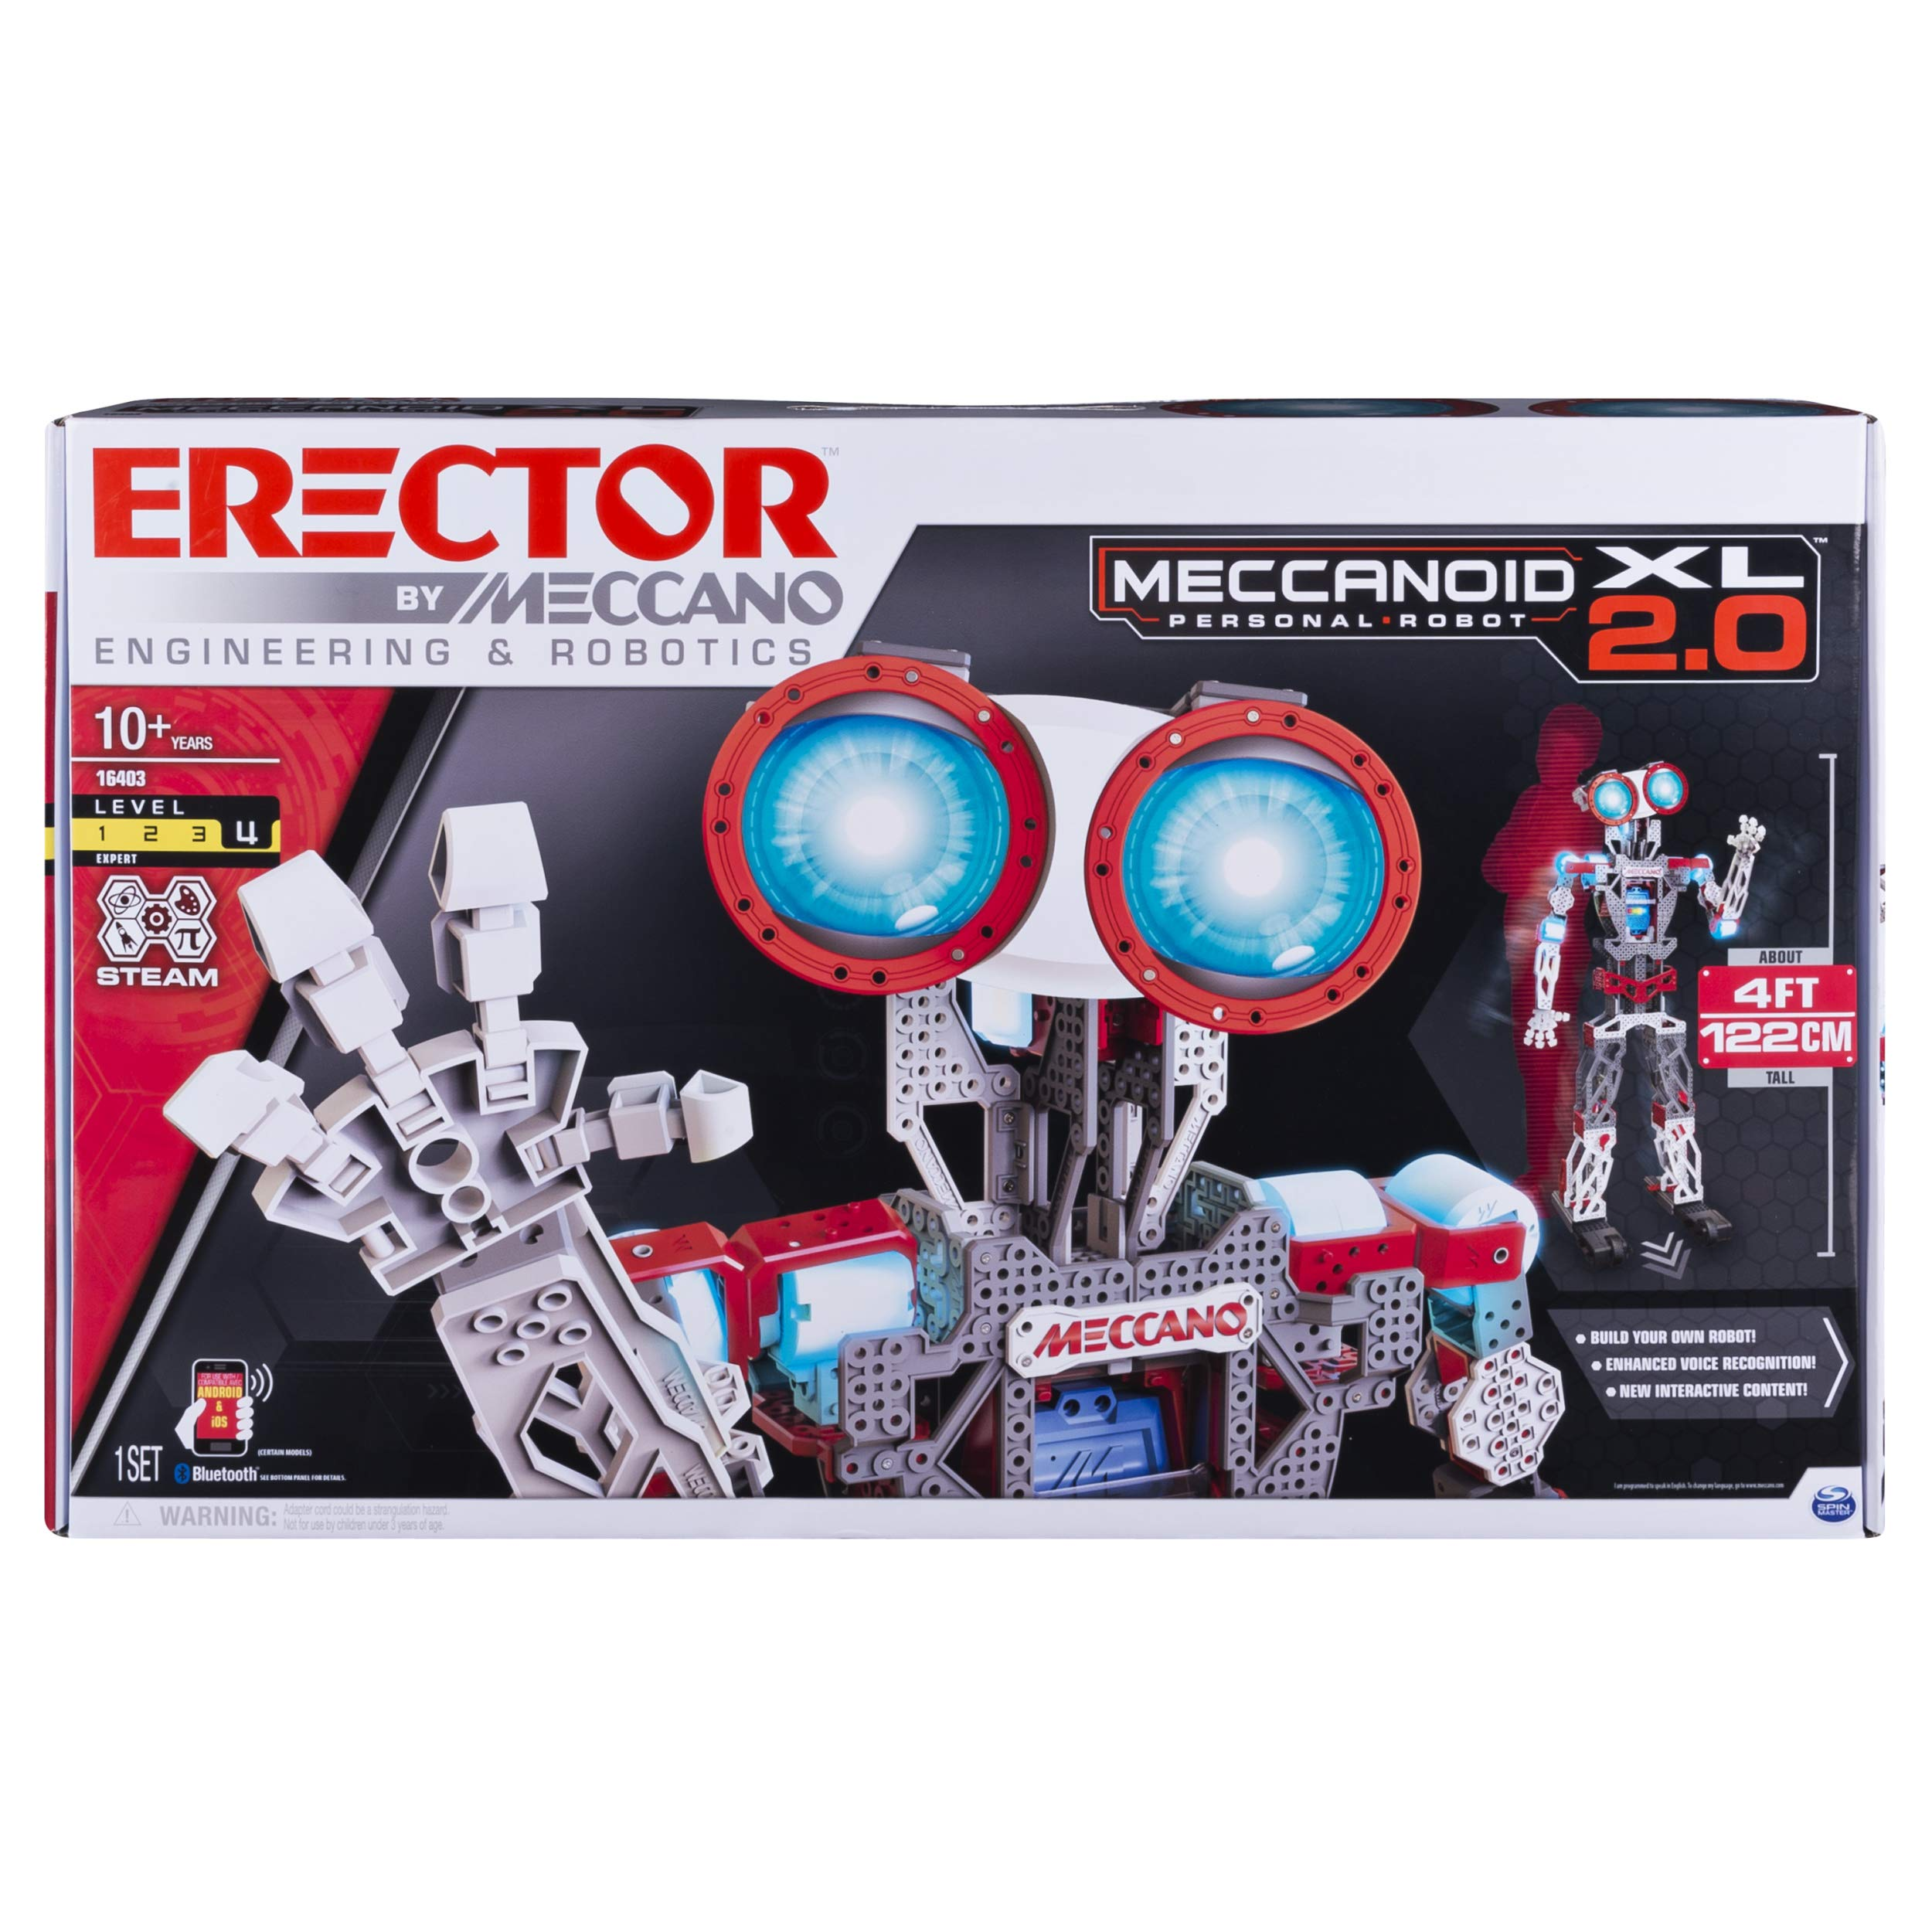 Erector by Meccano Meccanoid XL 2.0 Robot-Building Kit, STEM Education Toy for Ages 10 & Up (Amazon Exclusive) by MECCANO